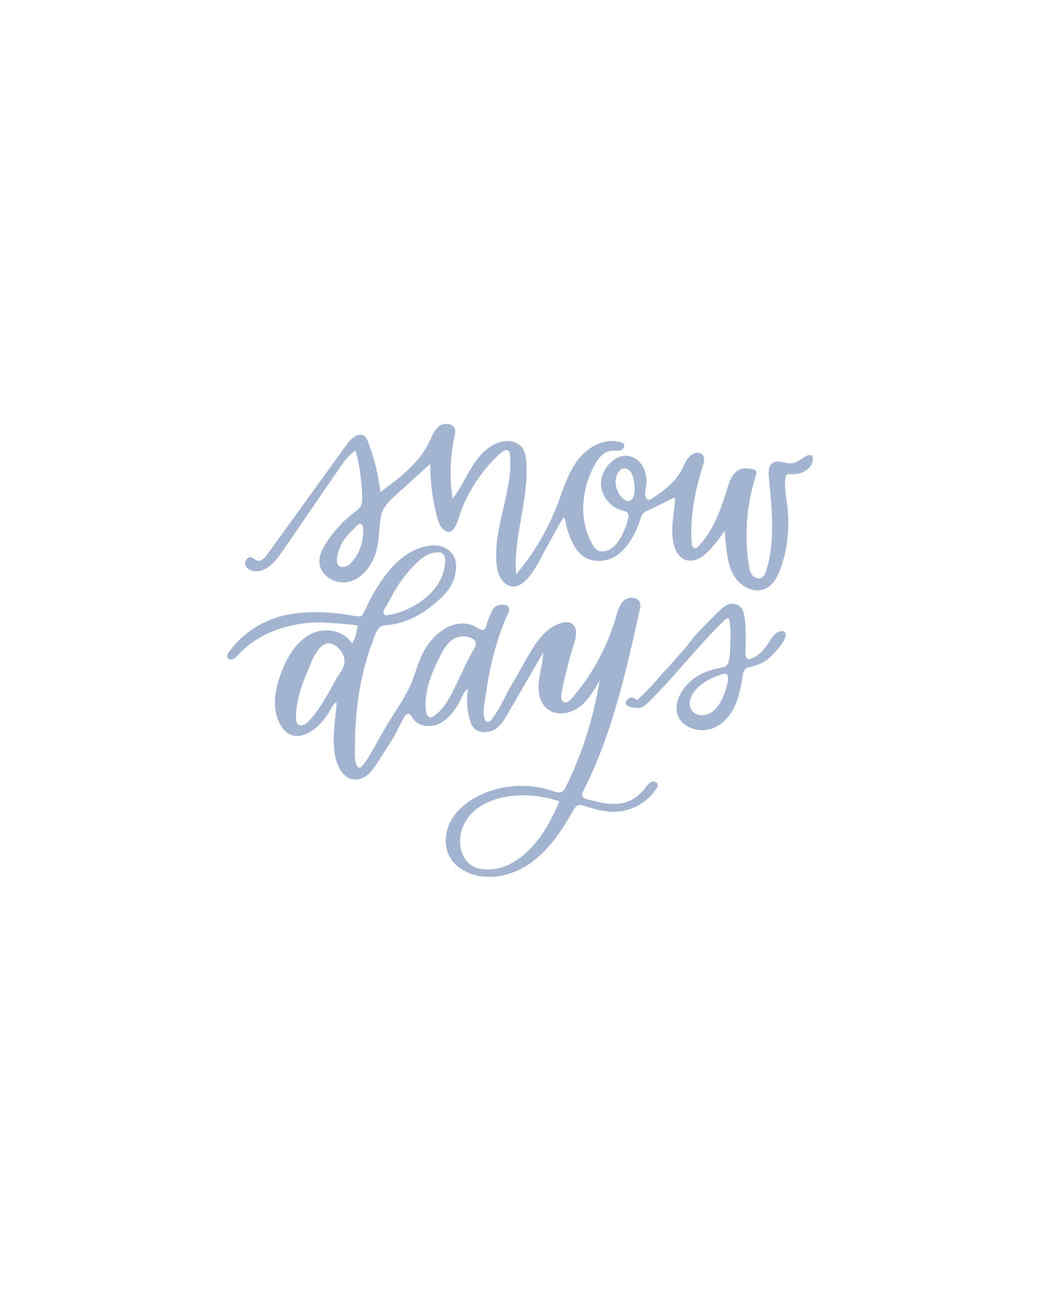 """snow days"" in calligraphy"